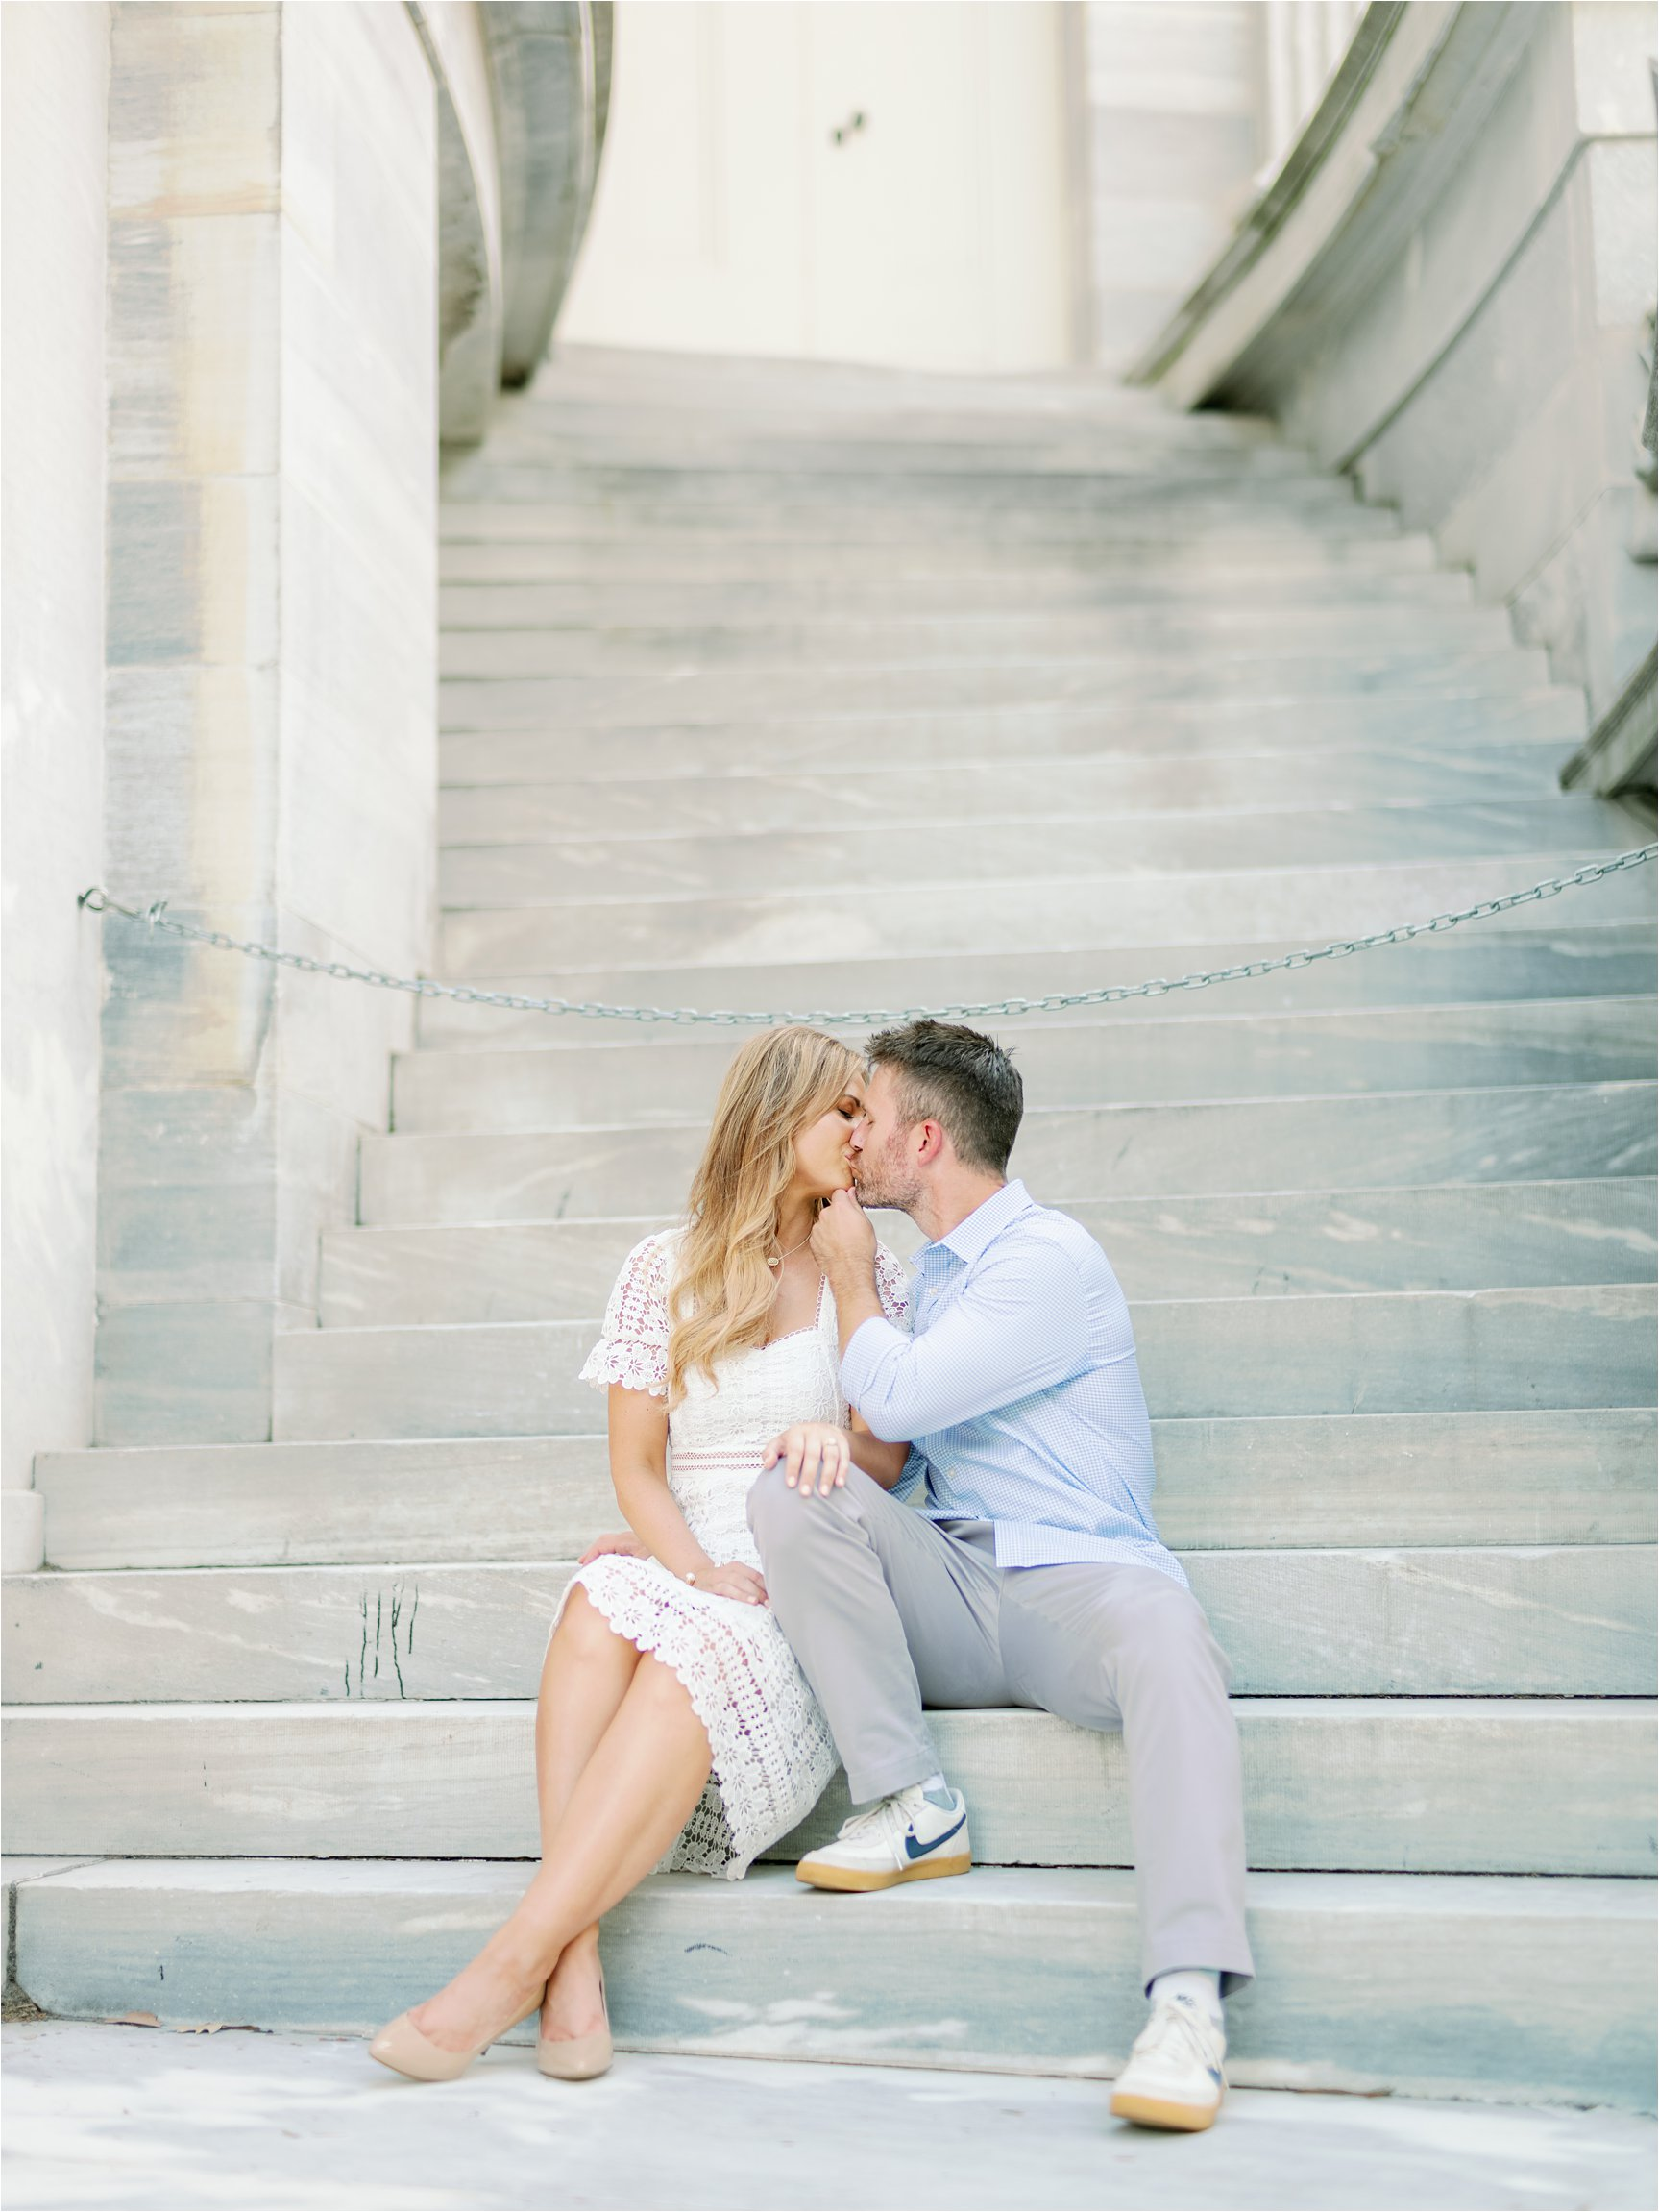 Philly_Engagement_Shoot175.JPG